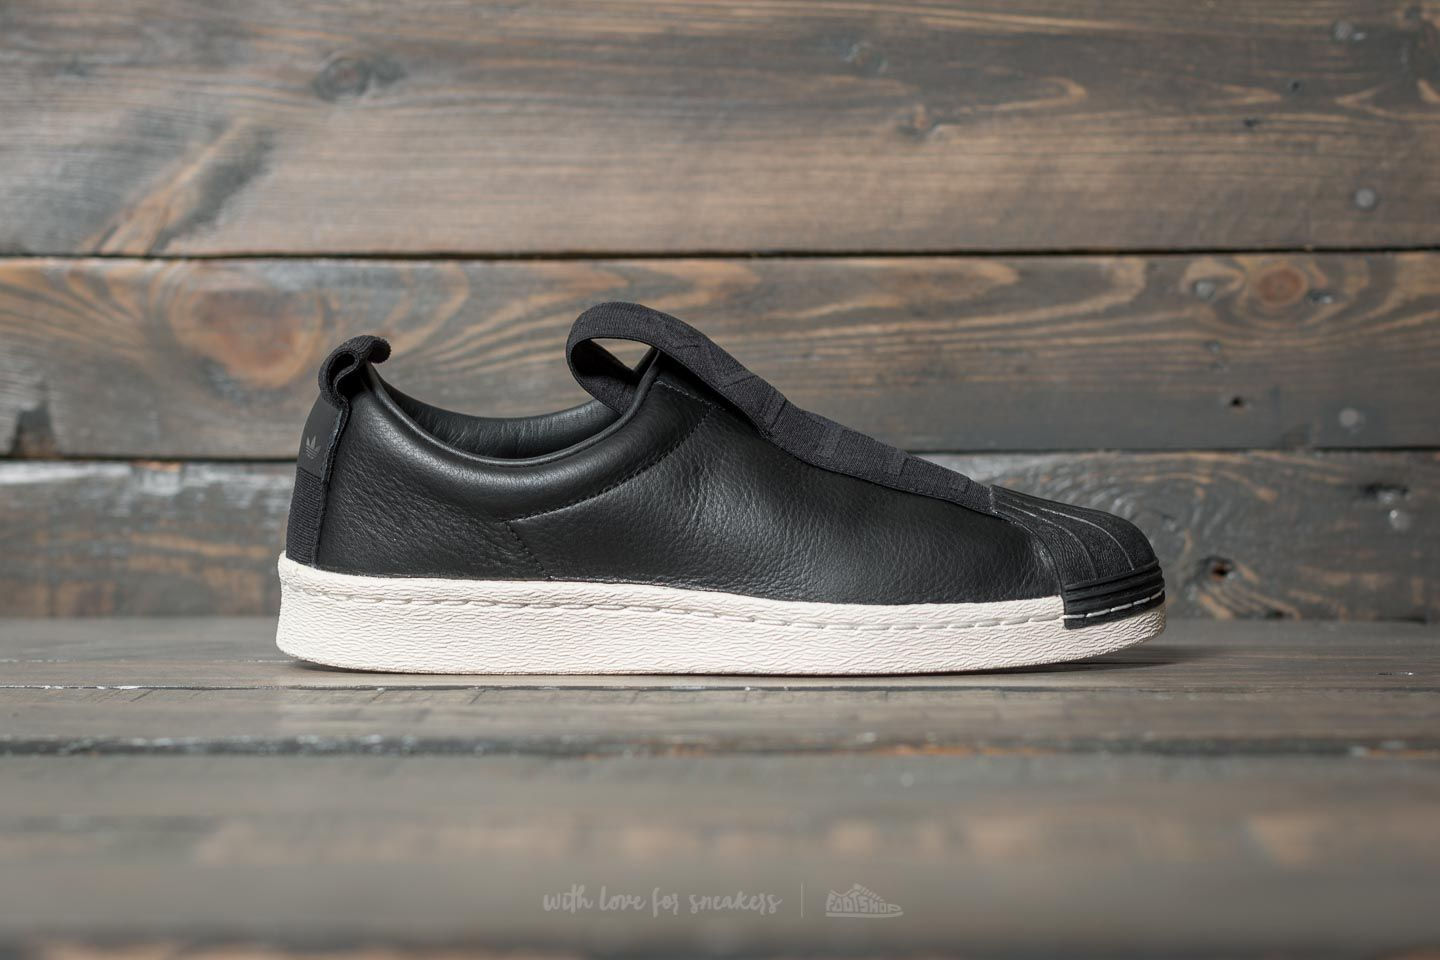 finest selection 6e306 fbc02 adidas Superstar Brand With 3 Stripes Slip On W Core Black  Core Black  Off